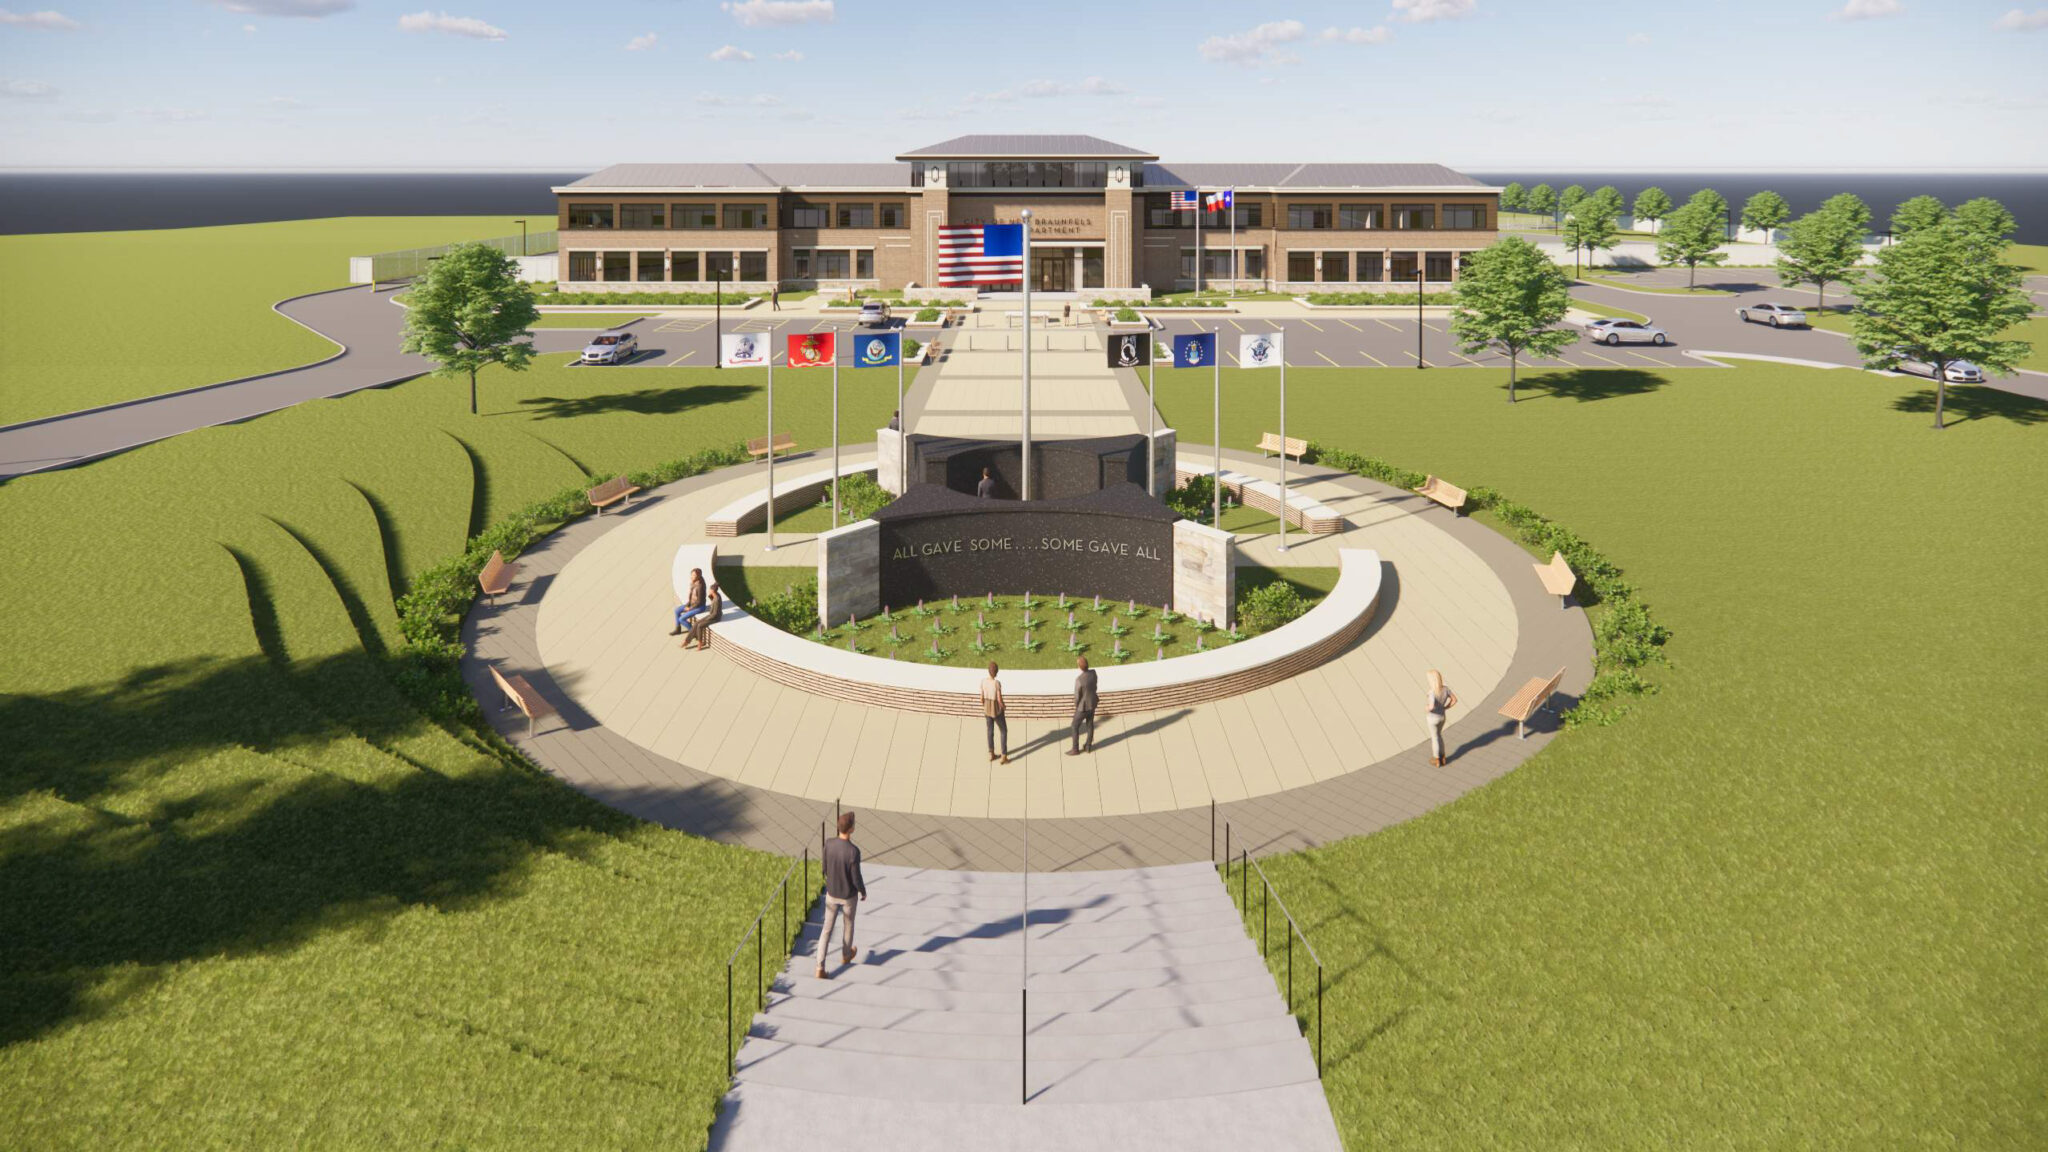 City of New Braunfels Police Headquarters and Veterans Memorial Exterior Rendering